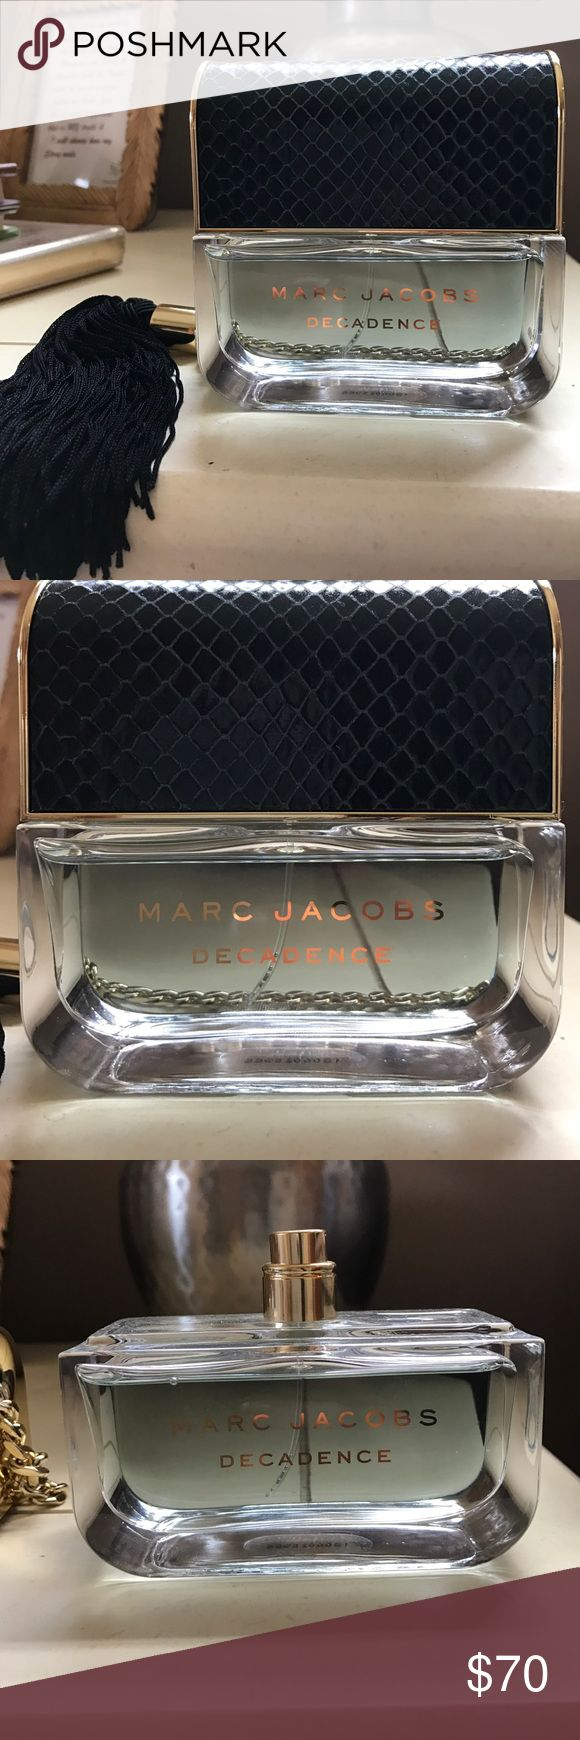 Marc Jacobs Devine Decadence Perfume AUTHENTIC! Purchased from Bloomingdale's Barely used. Sprayed 10 times maybe? I wear Decadence and thought I would get this for the lighter weather, but I'm just attached to my Decadence. Comes with tassel cap. Marc Jacobs Other